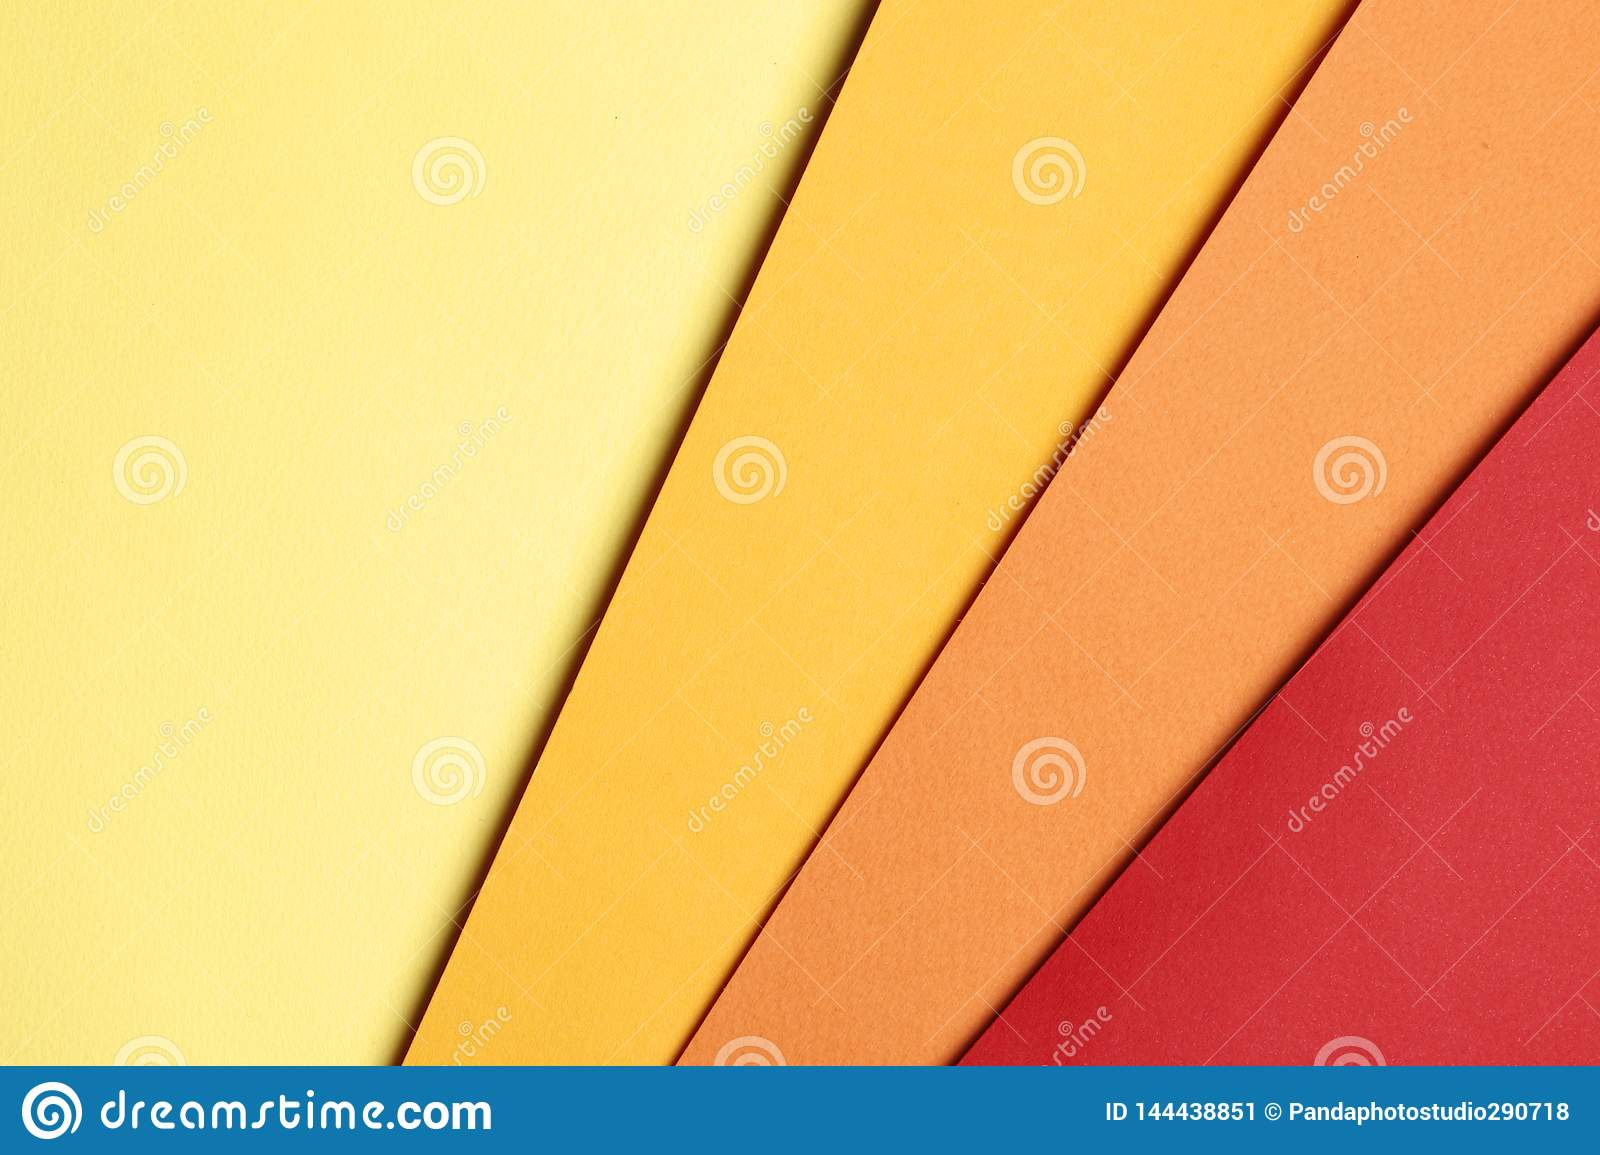 Bright yellow, orange and red abstract blank paper background